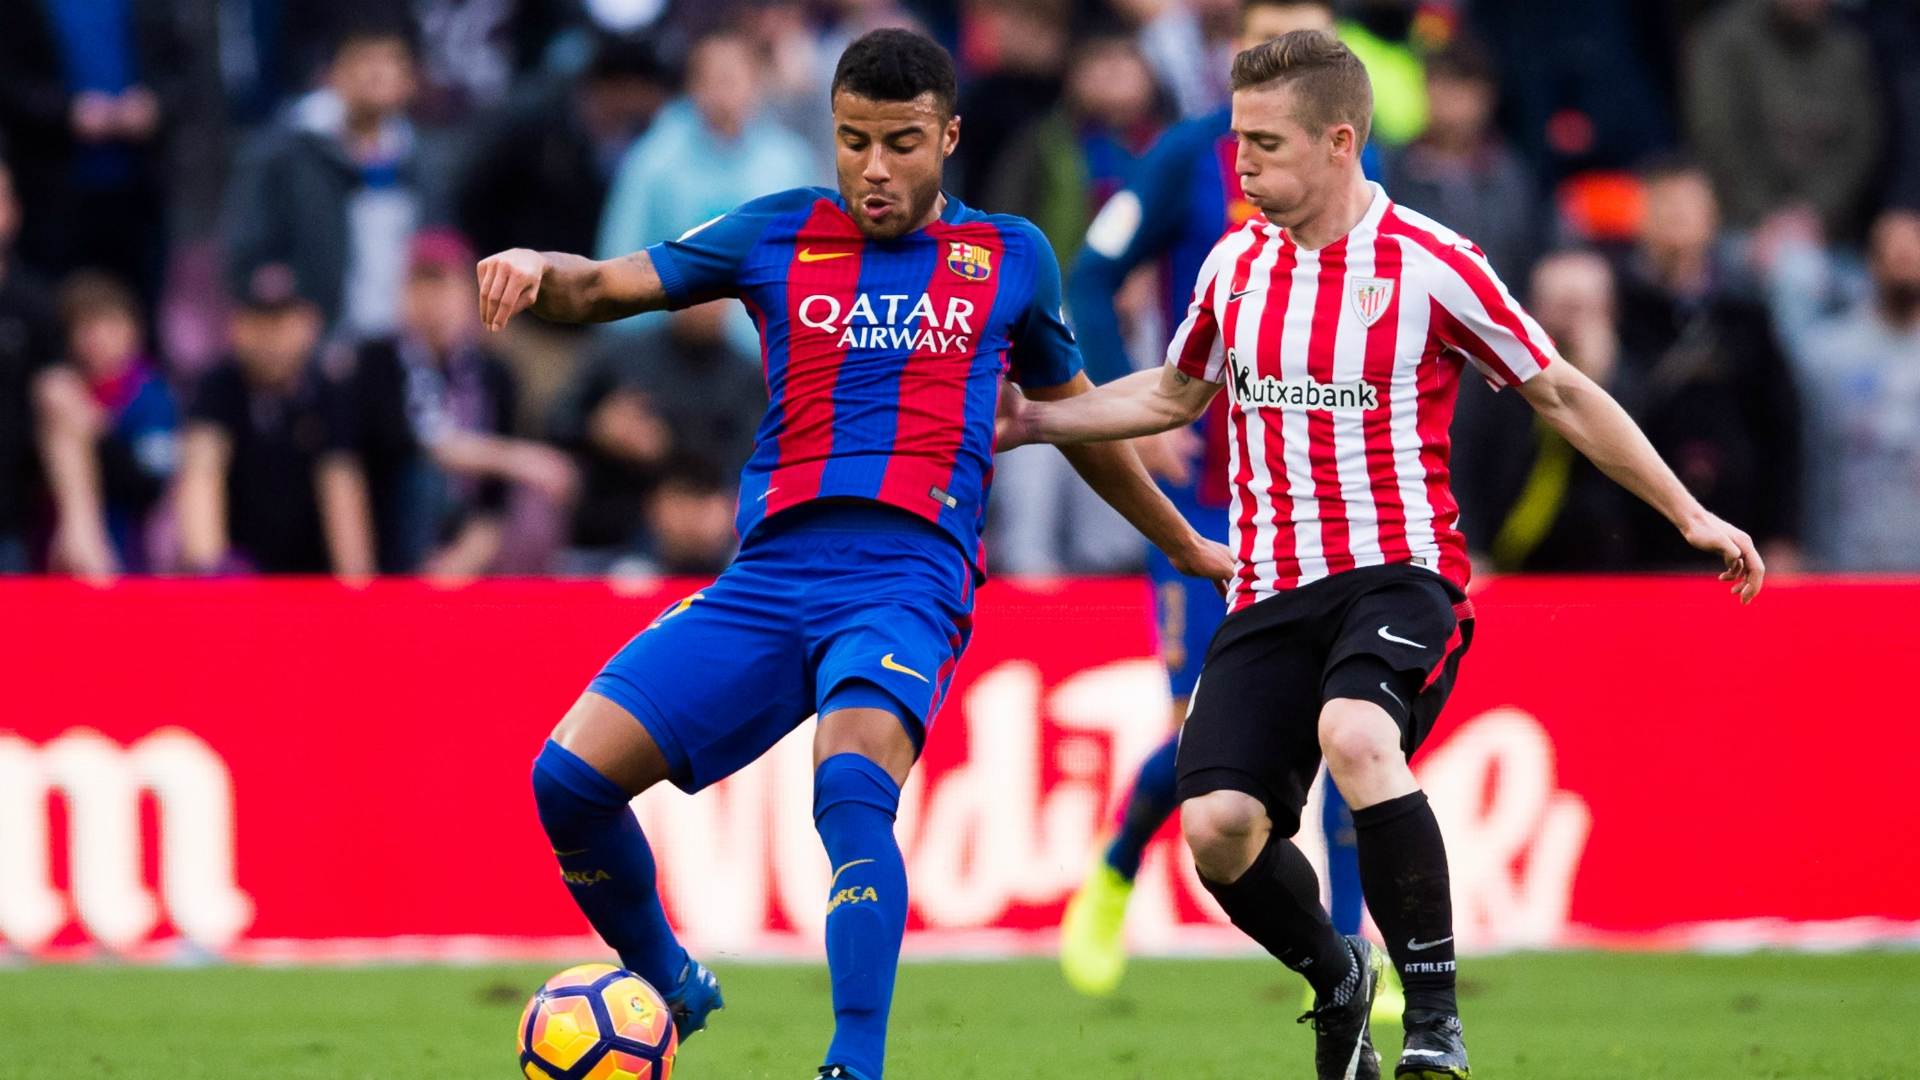 Real Sociedad vs. Barcelona live stream